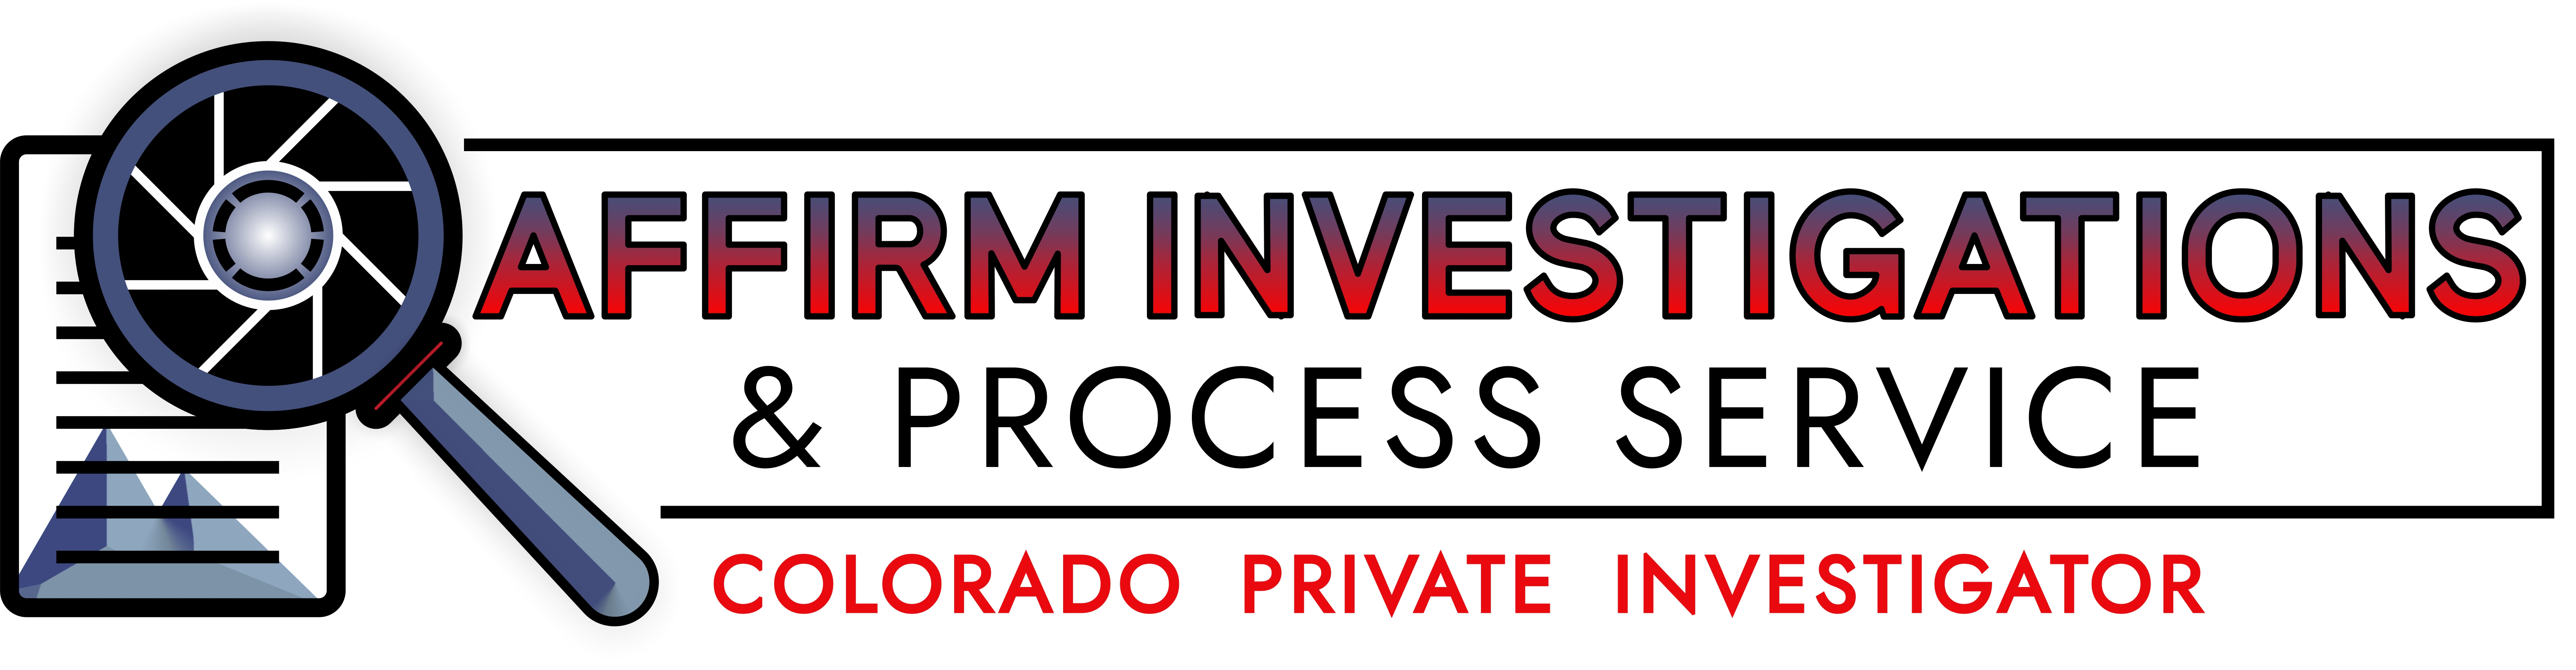 Colorado Private Investigator | Private Investigator Greeley